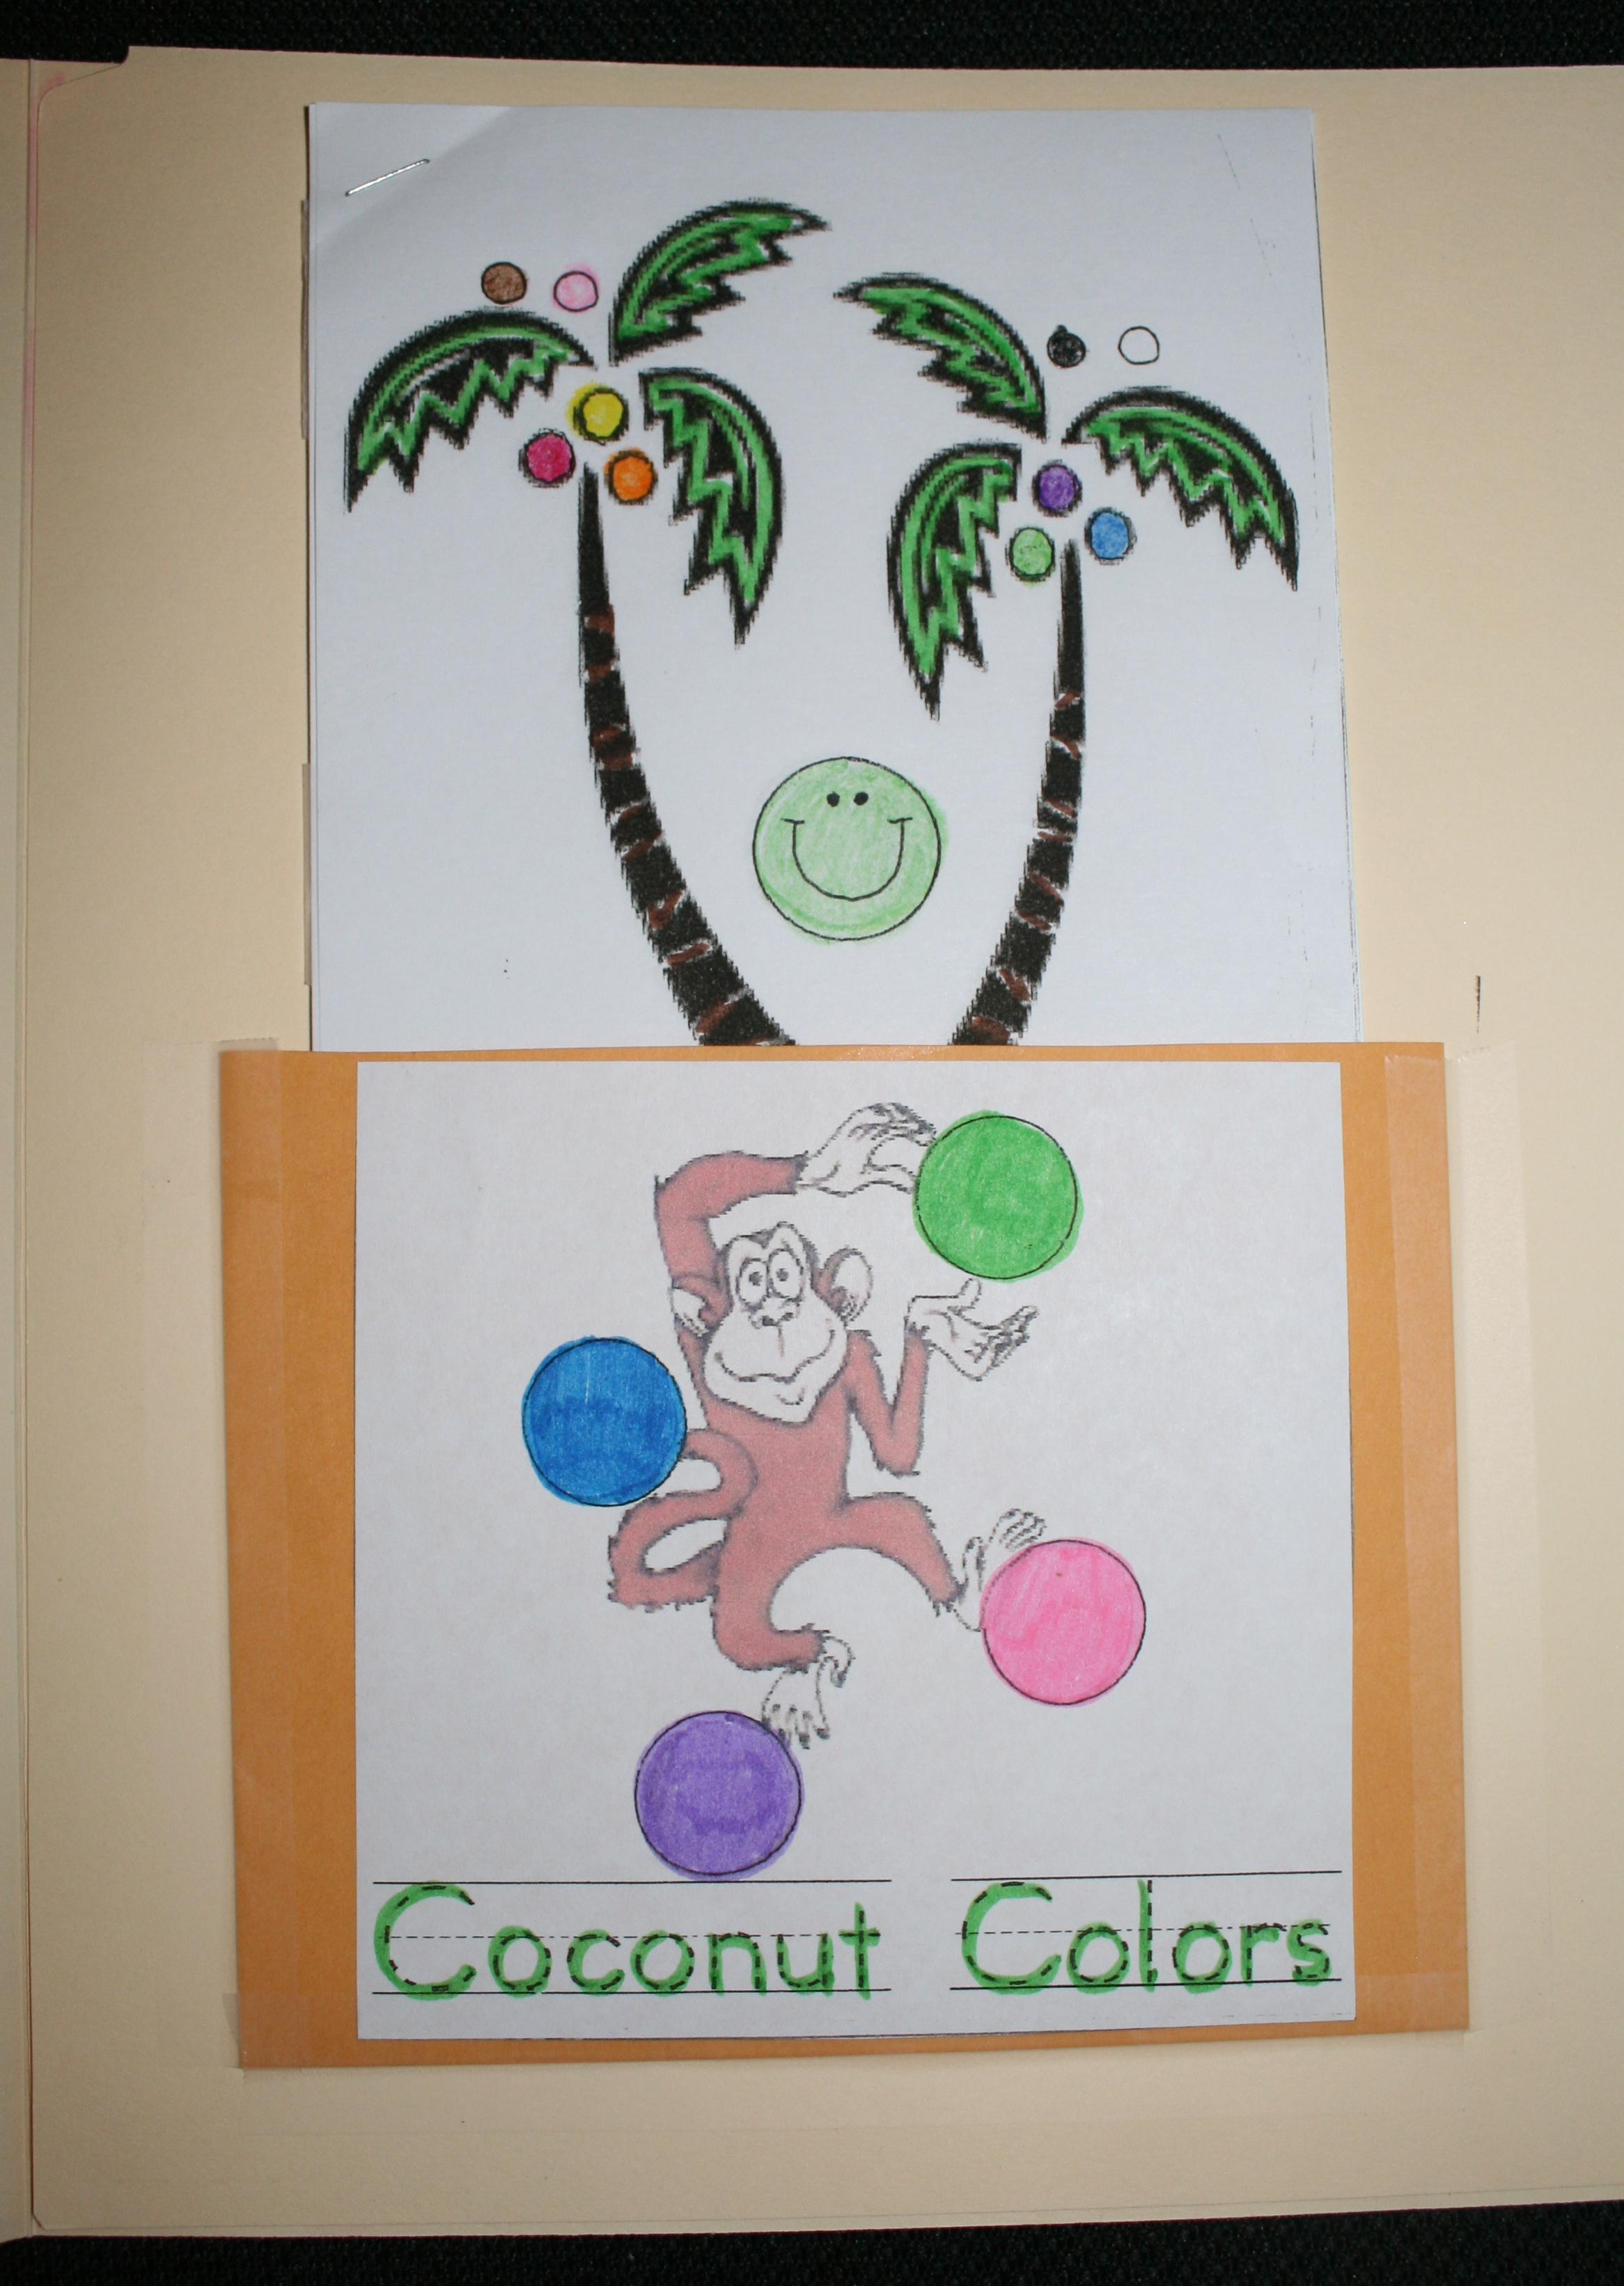 back to school bulletin boards, back to school ideas, chicka boom ideas, chicka boom activities, apple activities, apple art, apple ideas, chicka boom bulletin boards,